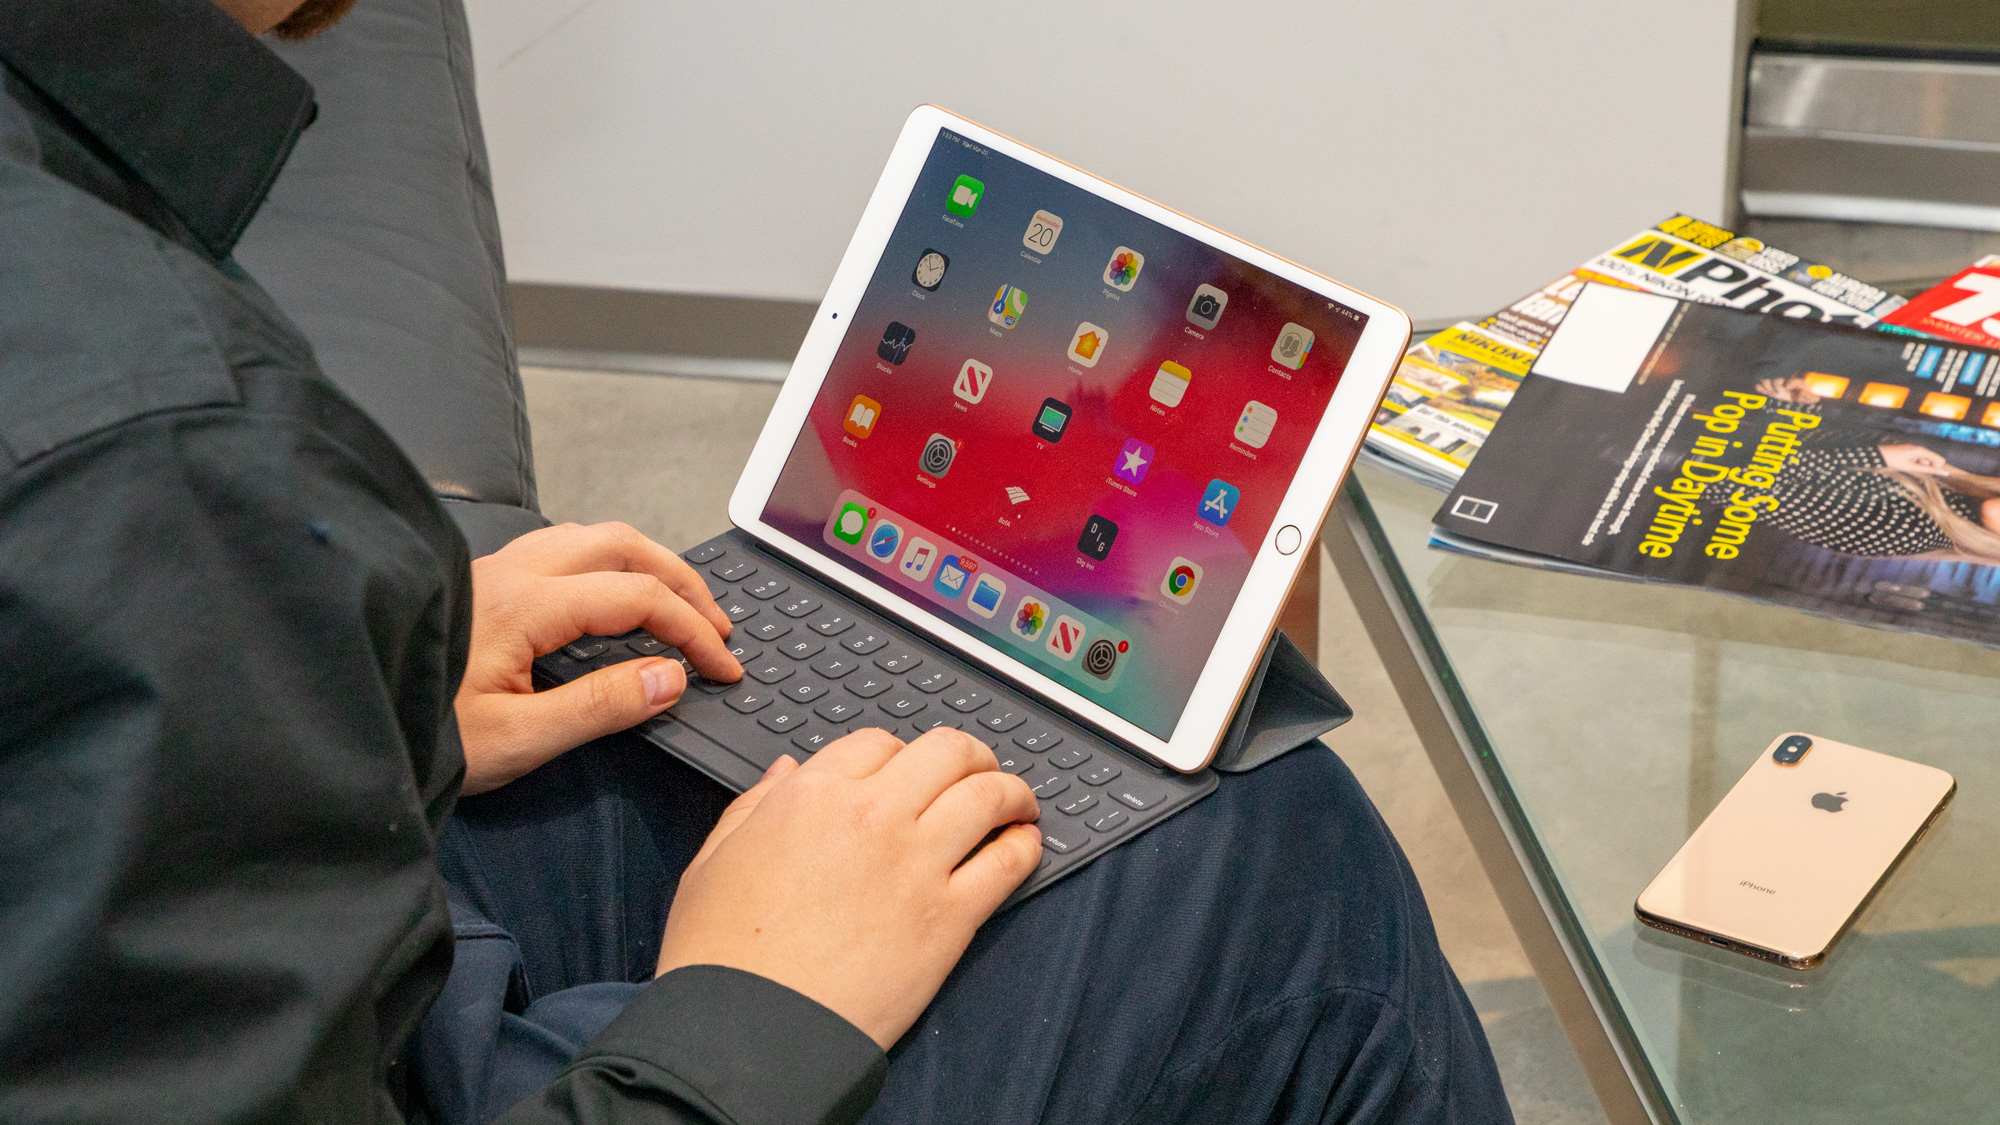 New iPad Air 2020 could take two of the iPad Pro's best features